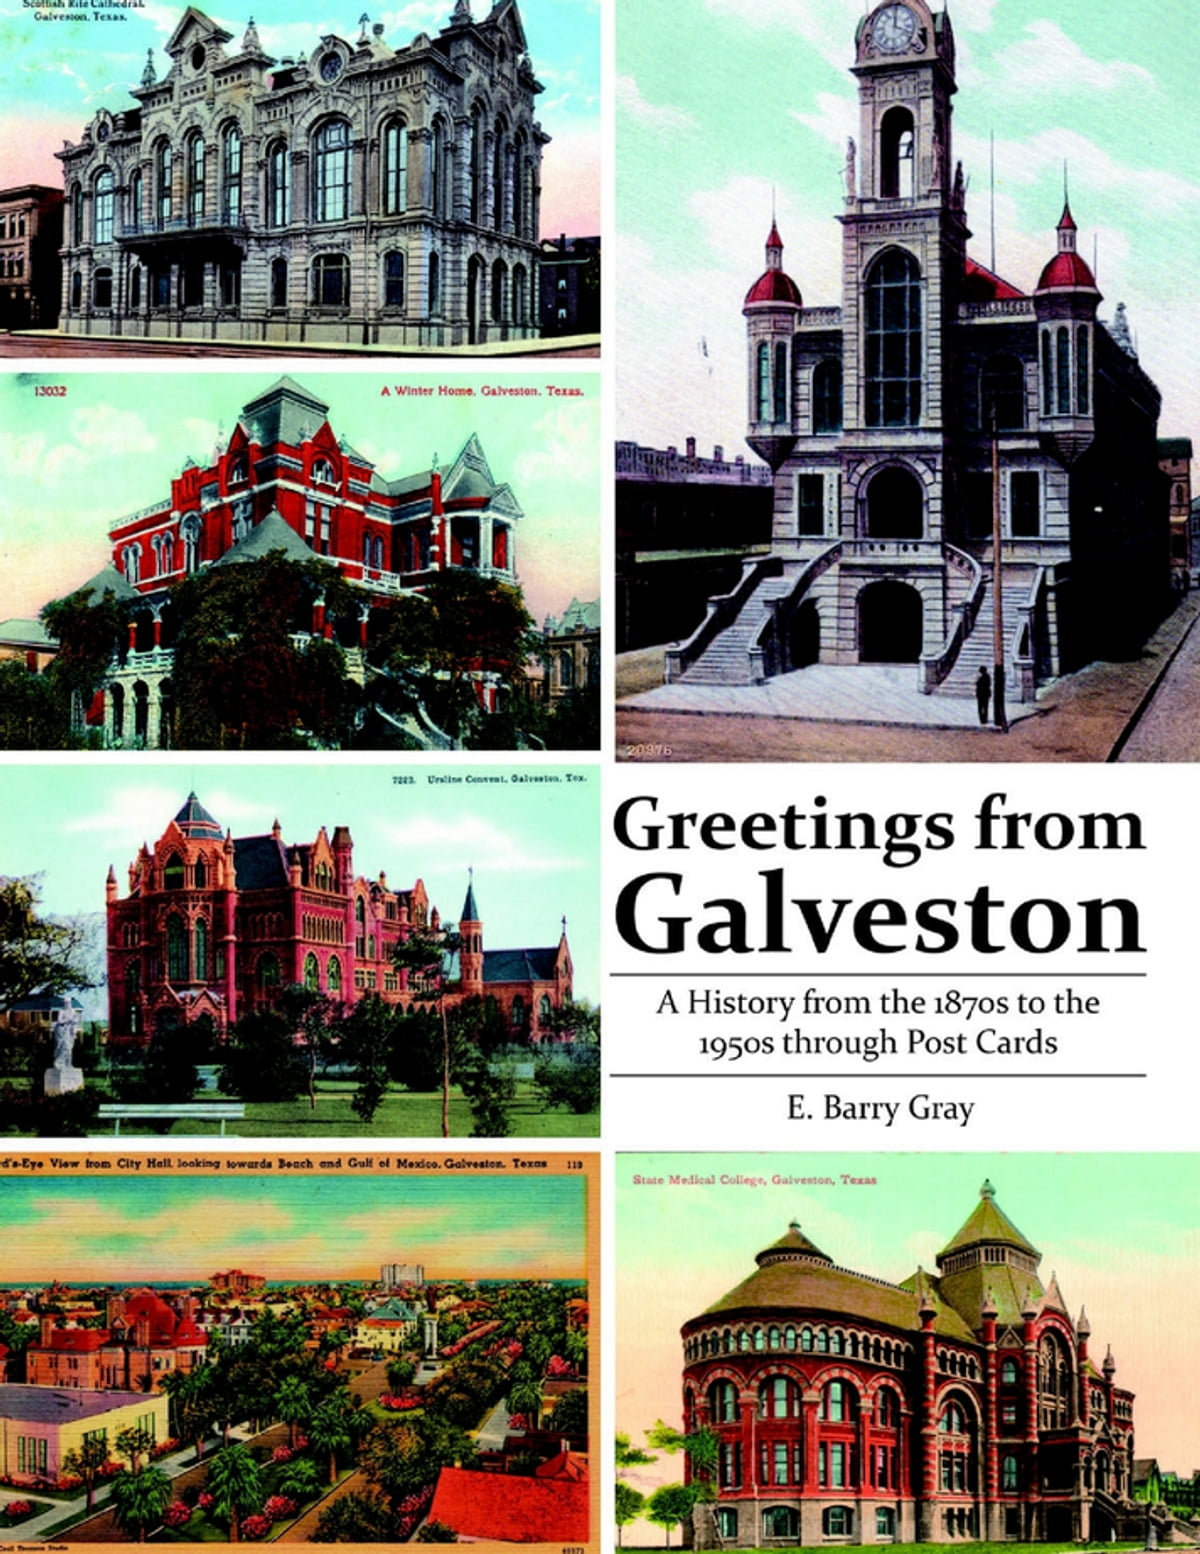 Greetings From Galveston A History From The 1870s To The 1950s